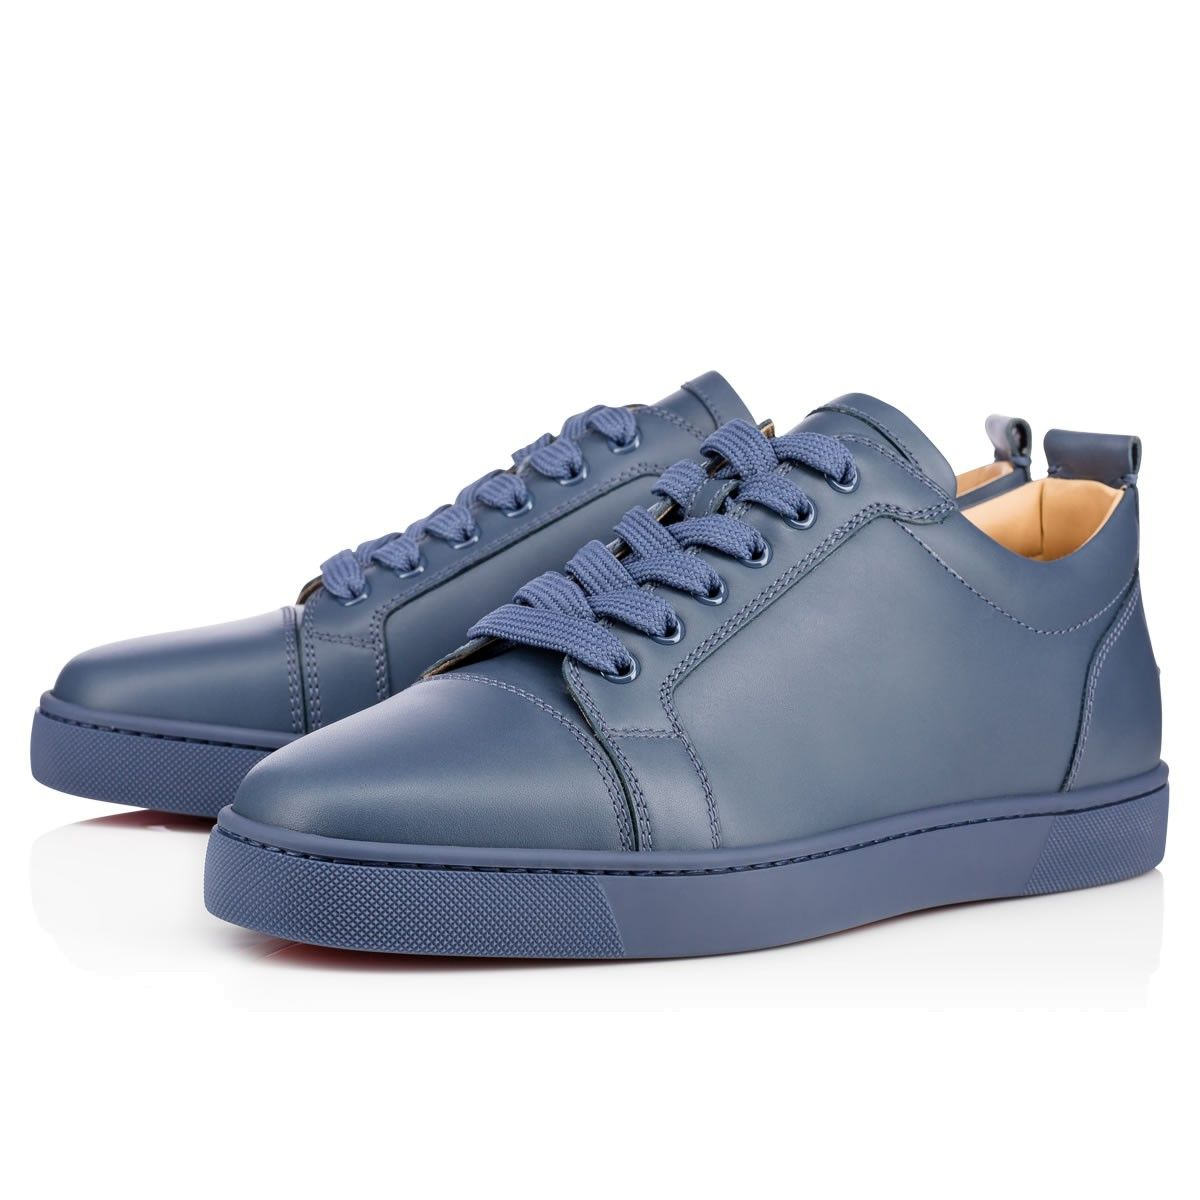 6464f0dbfb7 CHRISTIAN LOUBOUTIN Louis Junior Calf Blues Calfskin - Men Shoes ...